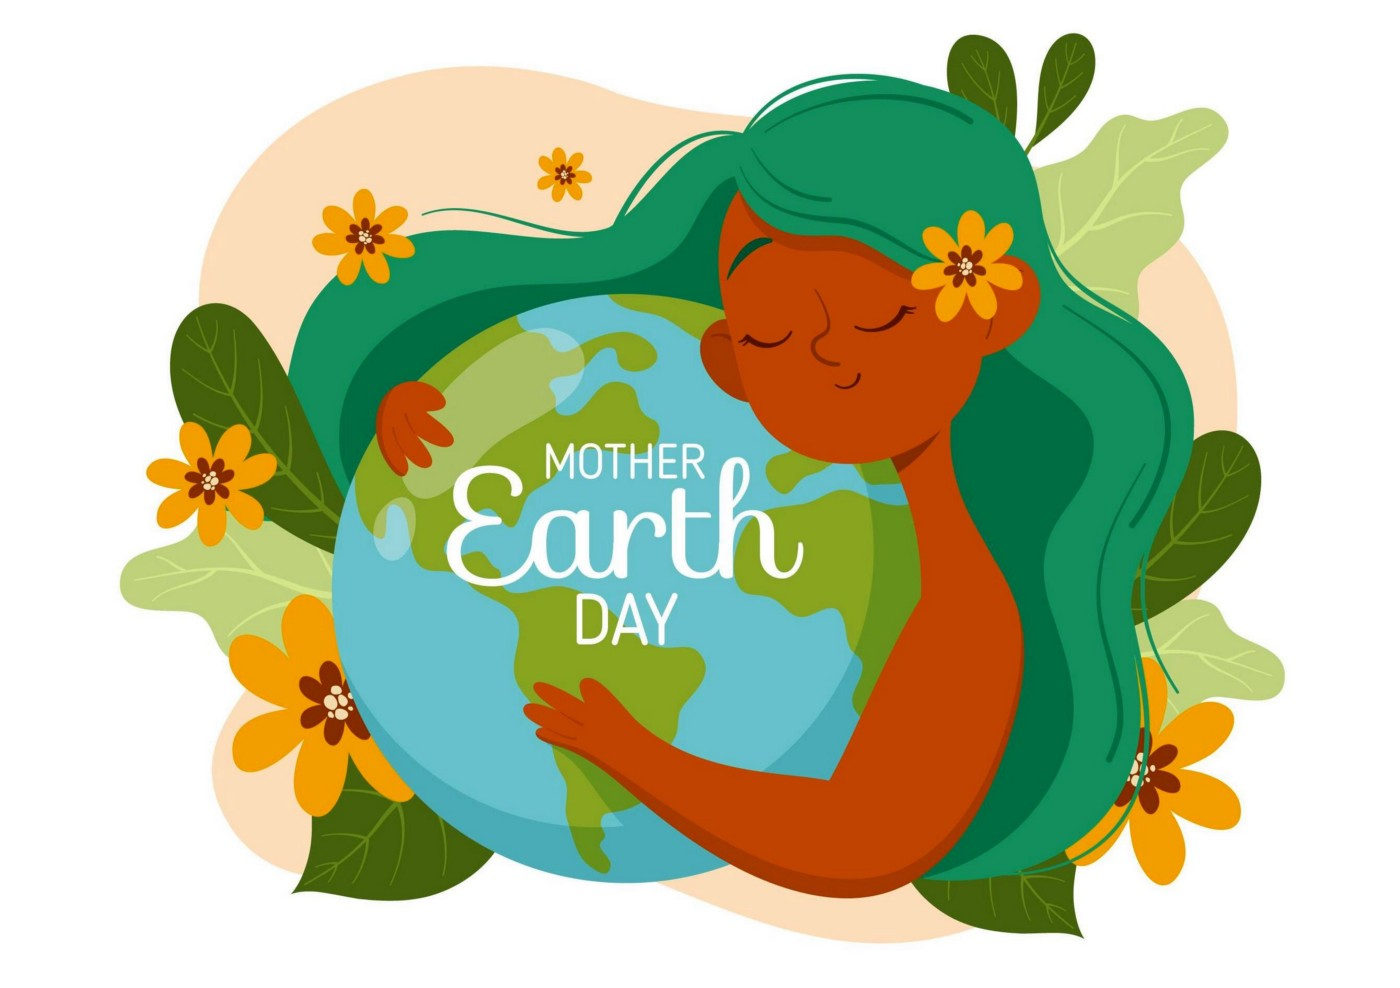 Illustration for Mother Earth Day—A girl with green hair hugging the planet